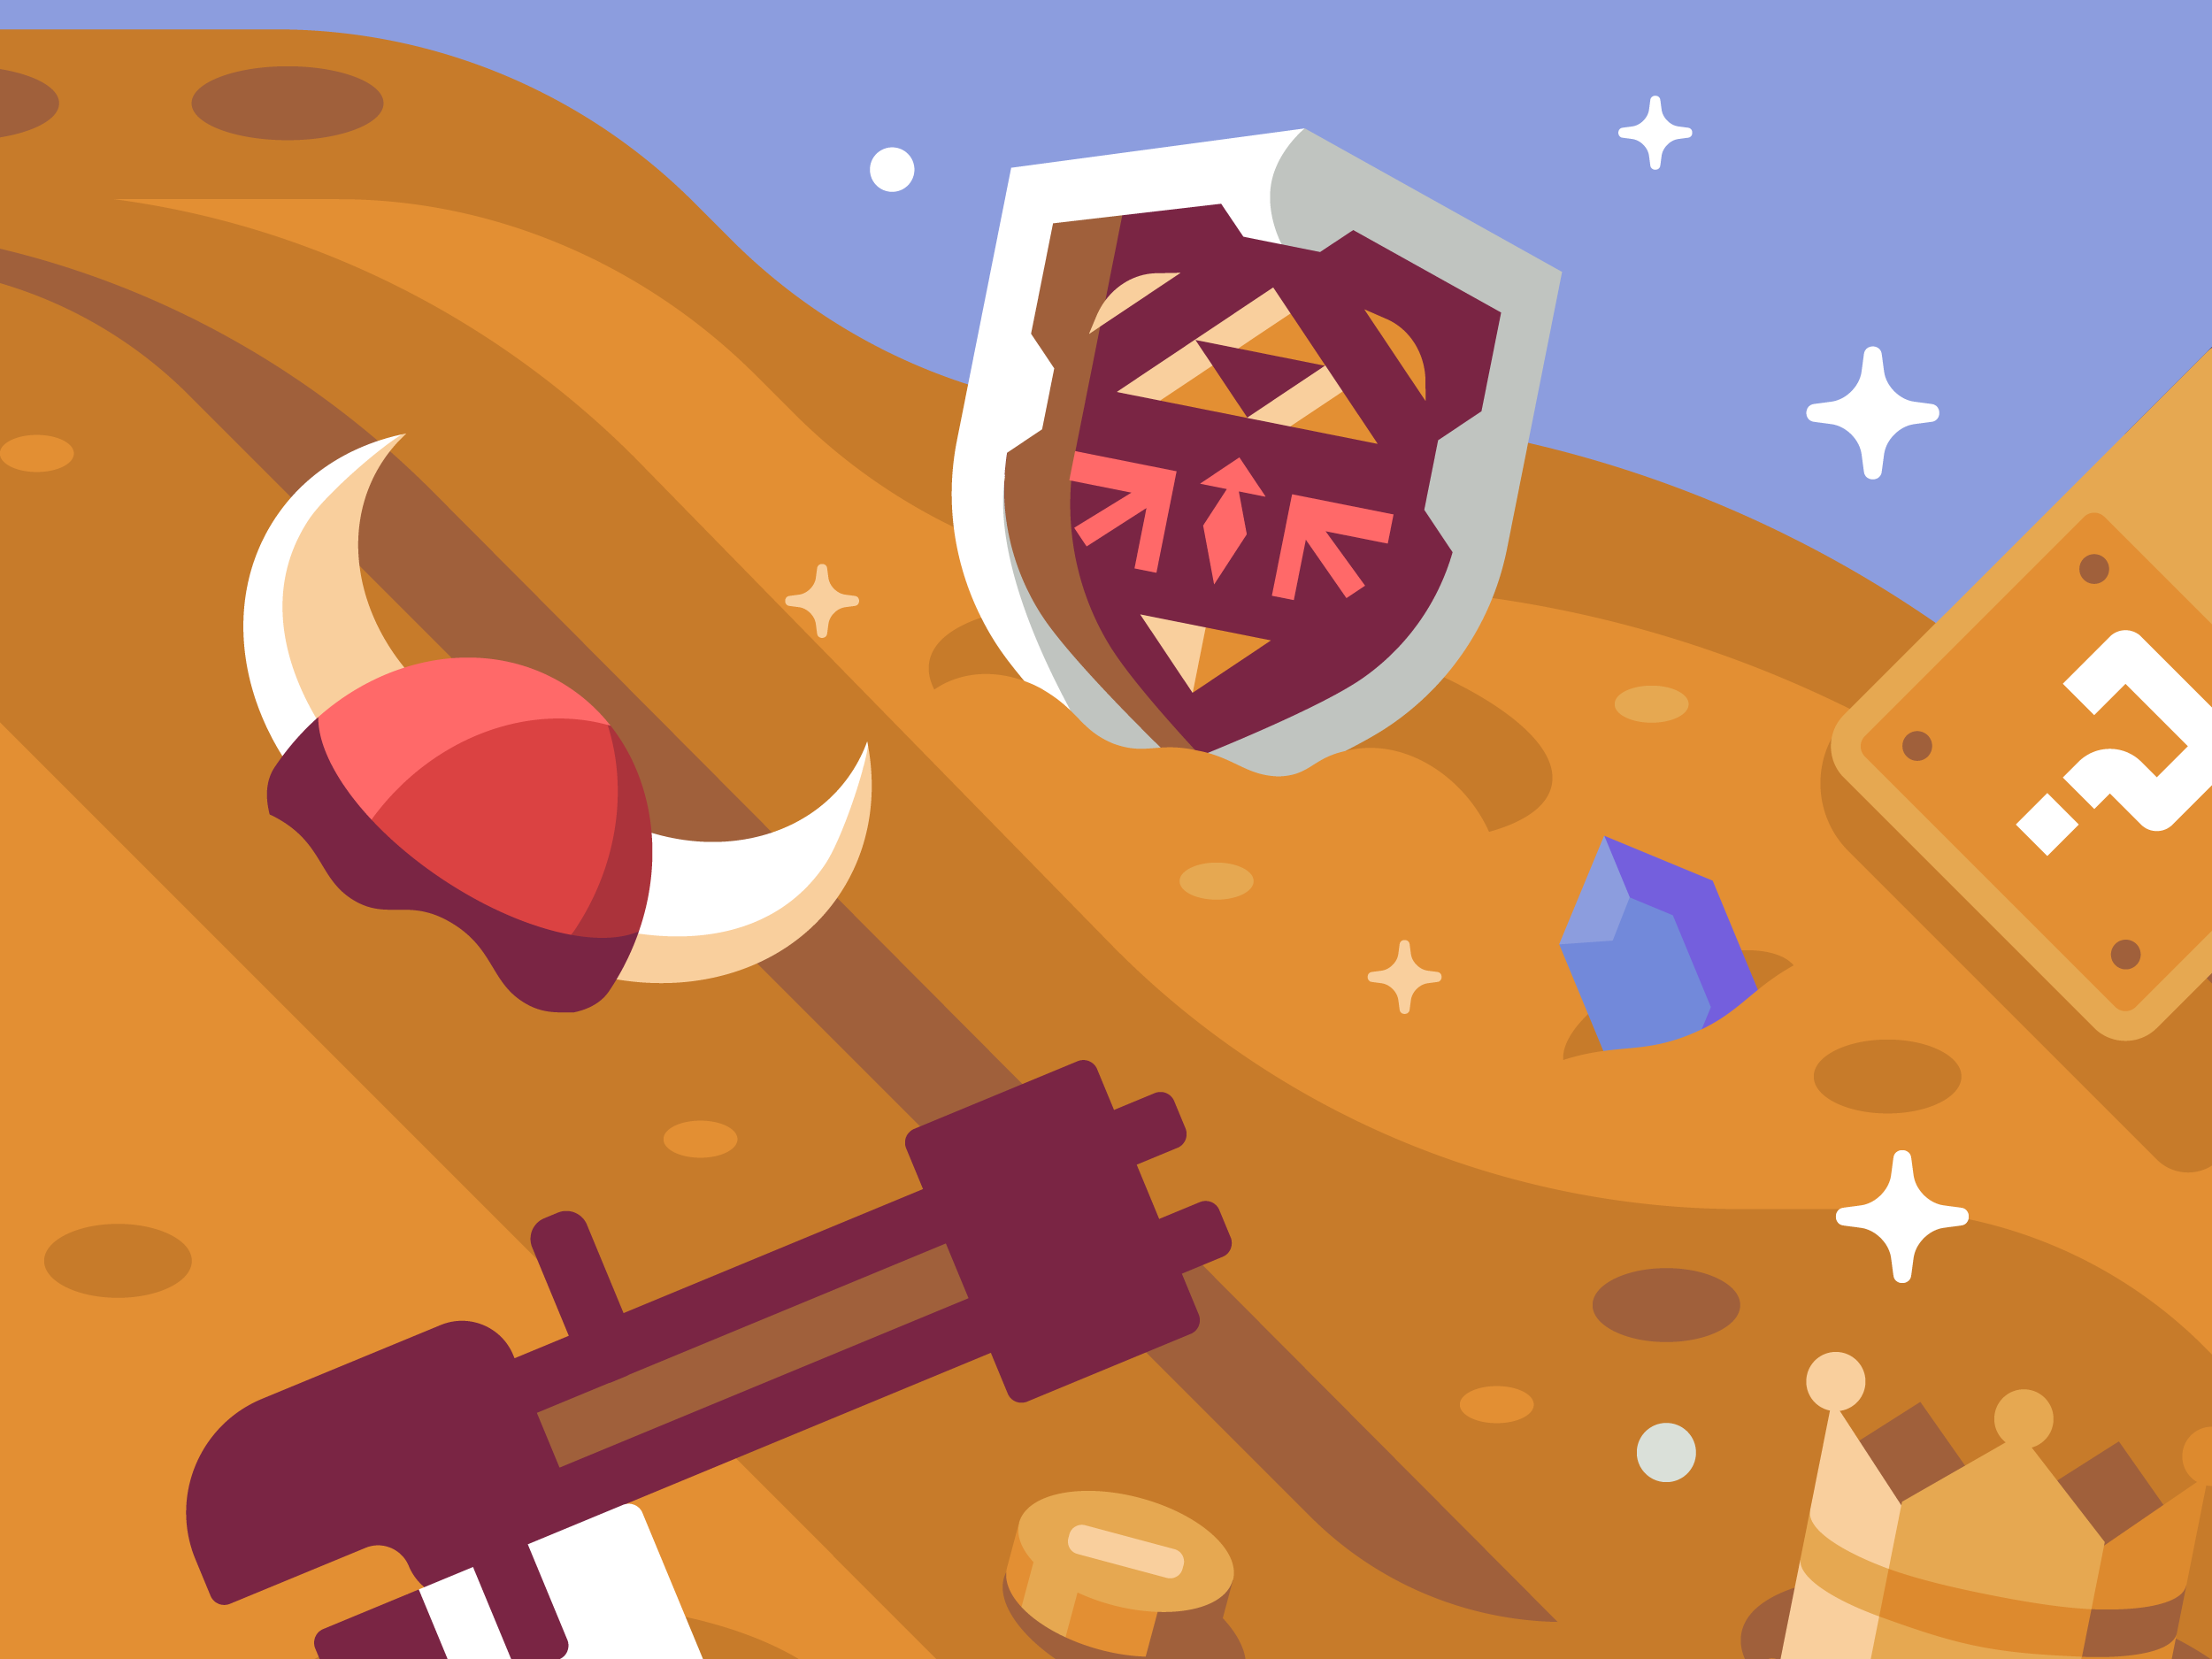 Mountains of Loot Hylian Shield, Discord Mural illustrations by Matt Anderson and Canopy Design and Illustration